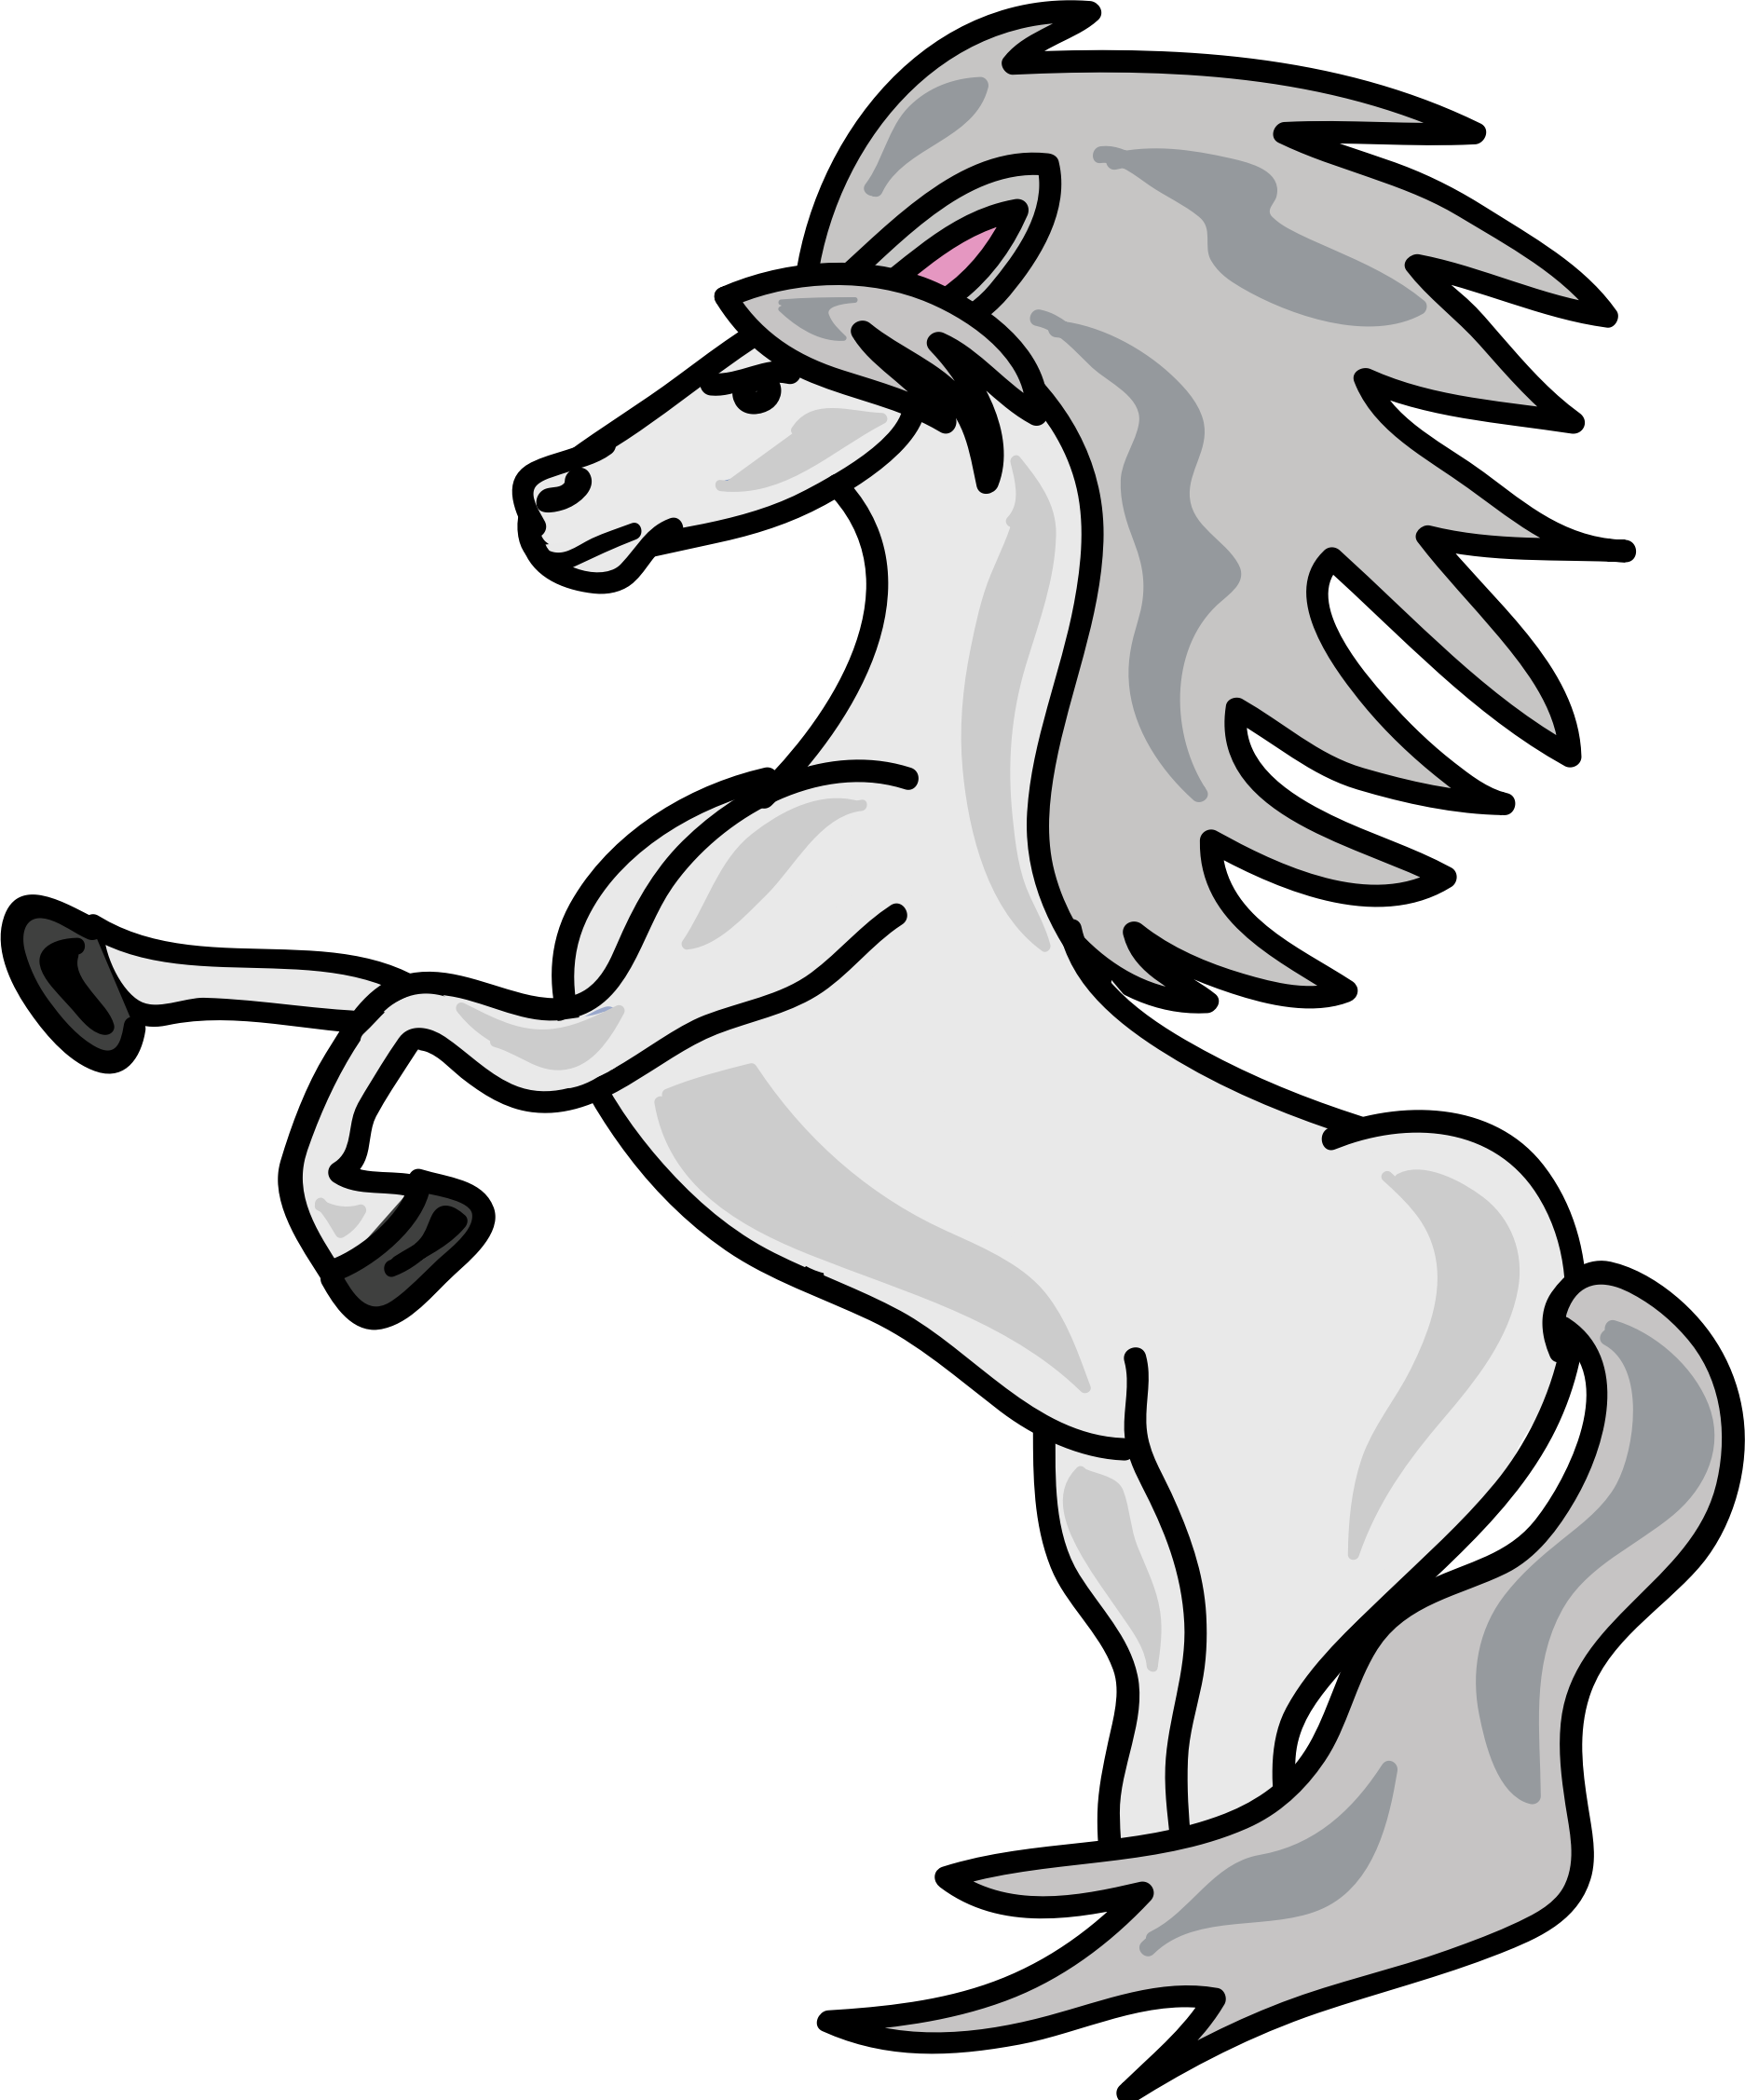 Download Horse Head Png Download Clipart Domestic Black And White Full Size Png Image Pngkit